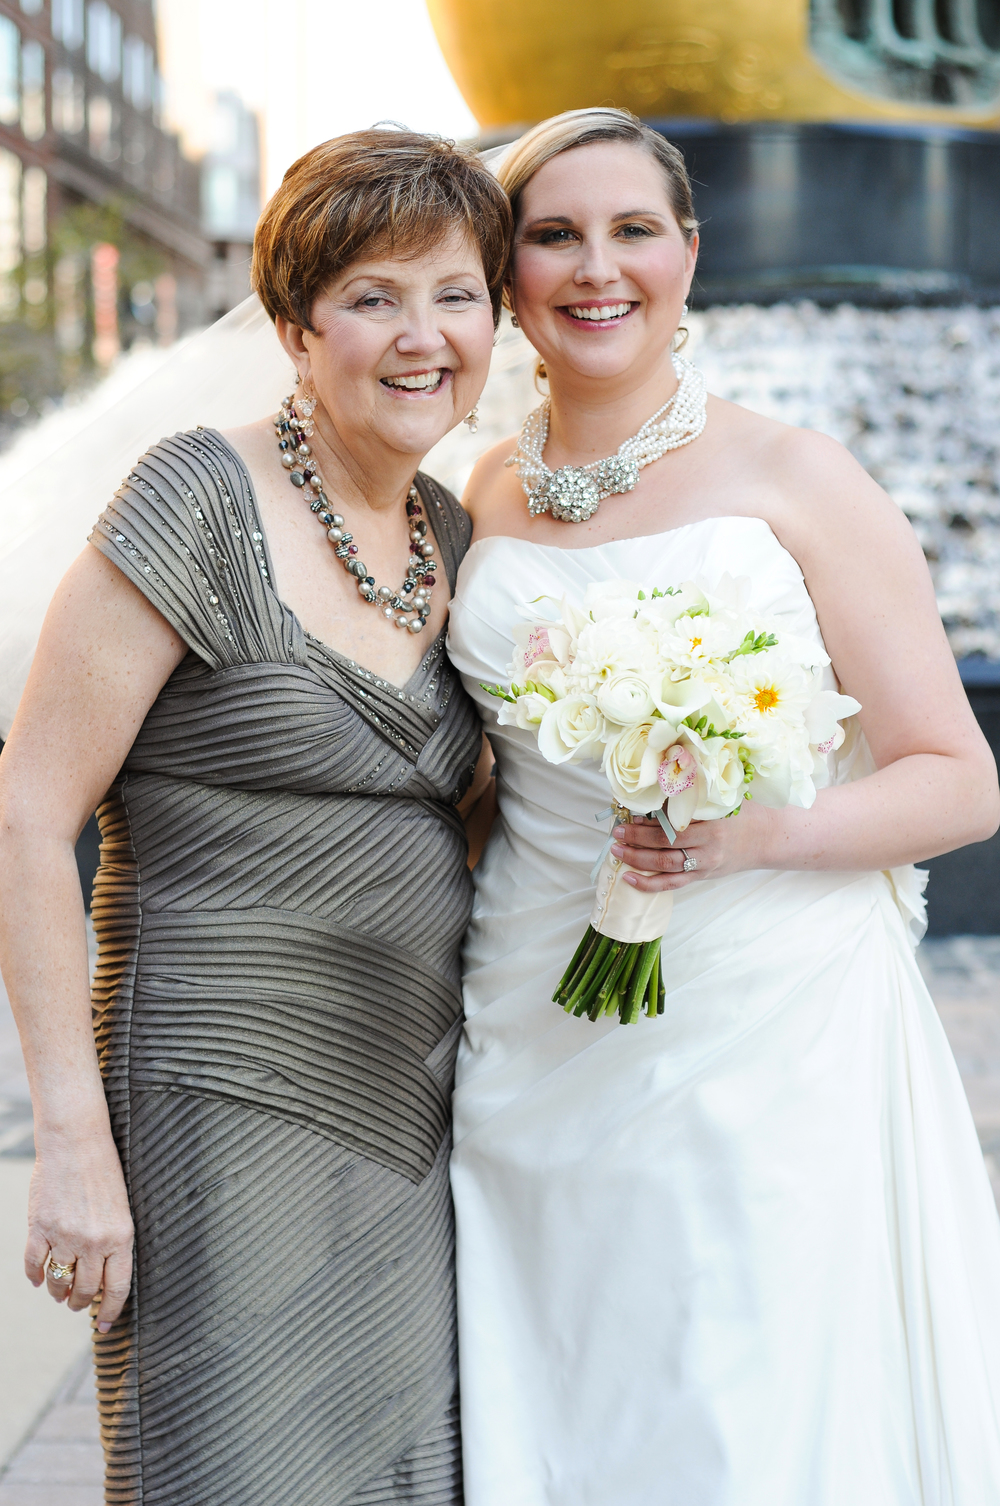 My Mom and I at our last and most special event together.  10.7.11